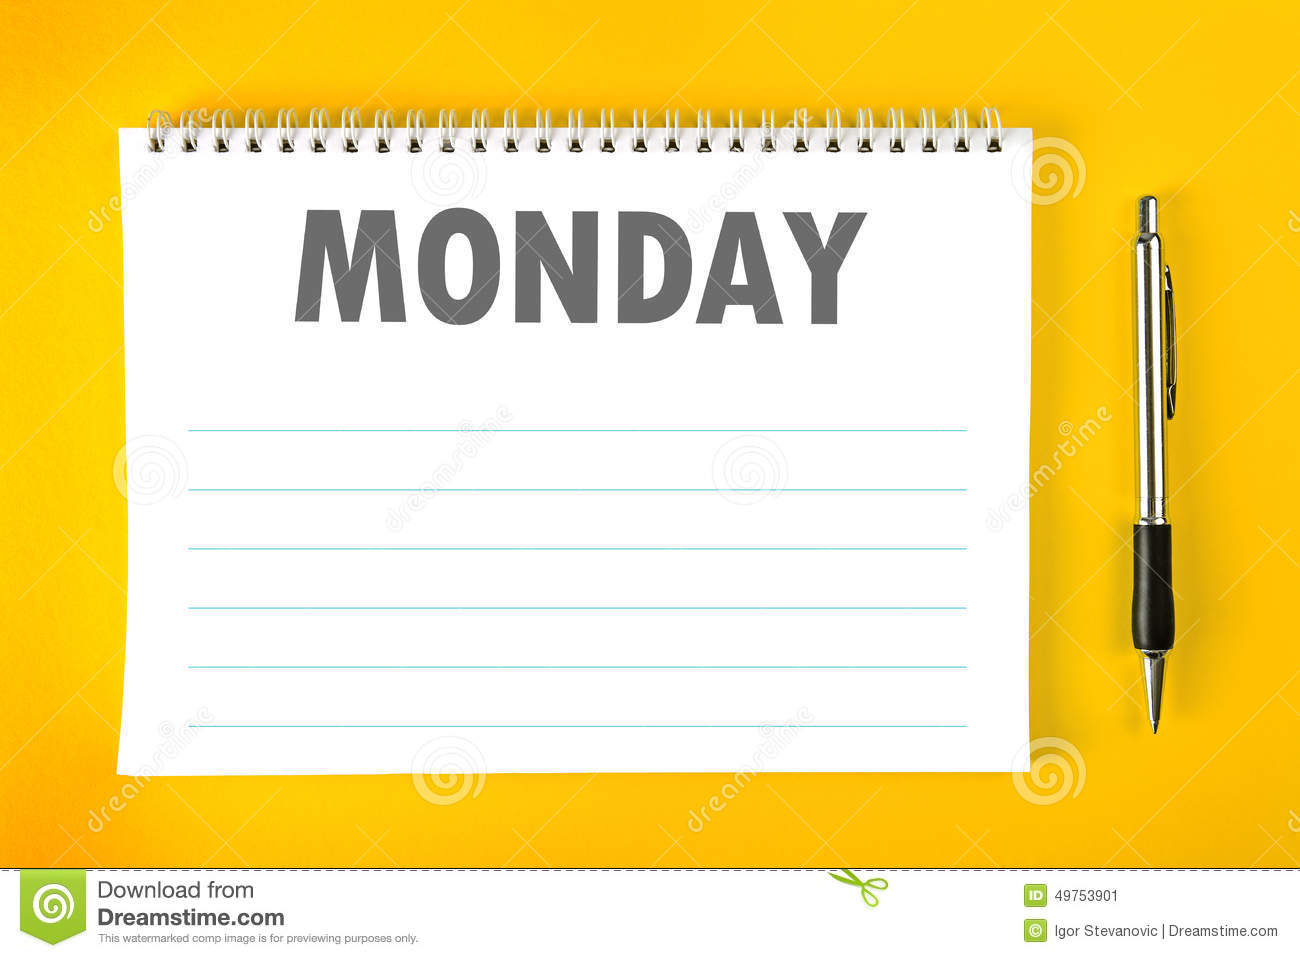 Monday Calendar Schedule Blank Page Stock Photo - Image: 49753901